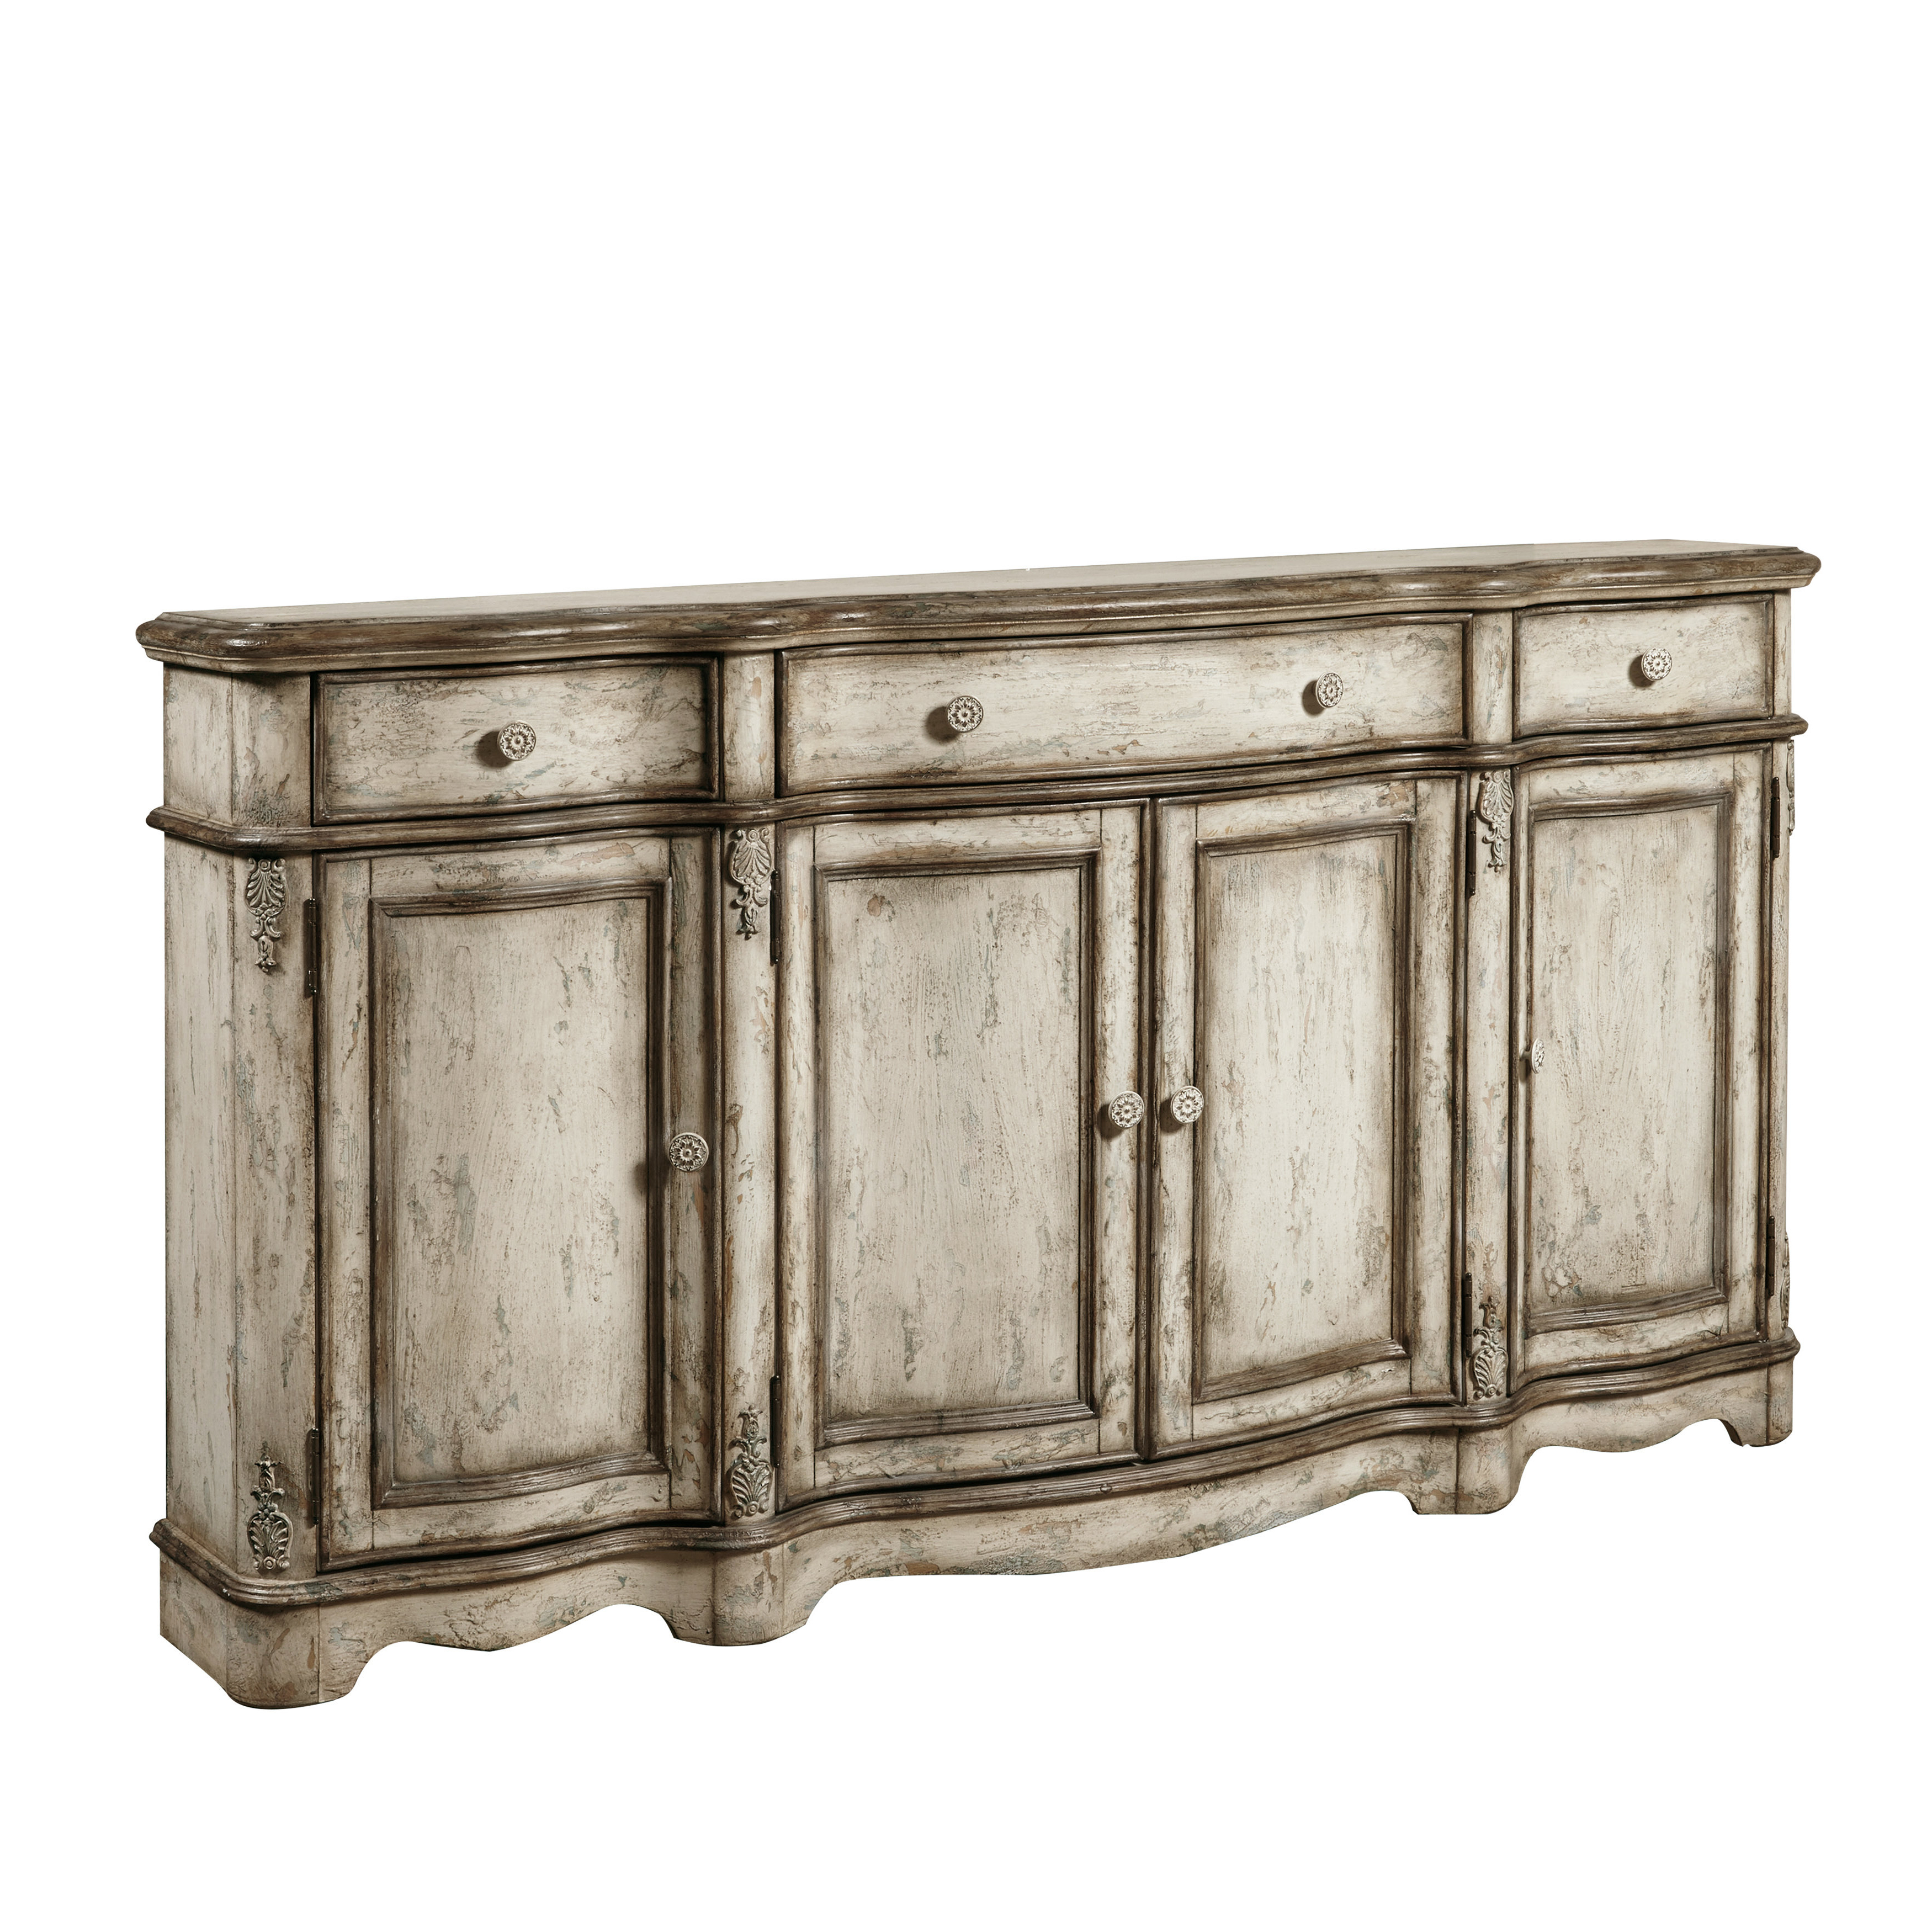 Seiling Sideboards Regarding Popular Farmhouse & Rustic Distressed Finish Sideboards & Buffets (Gallery 20 of 20)